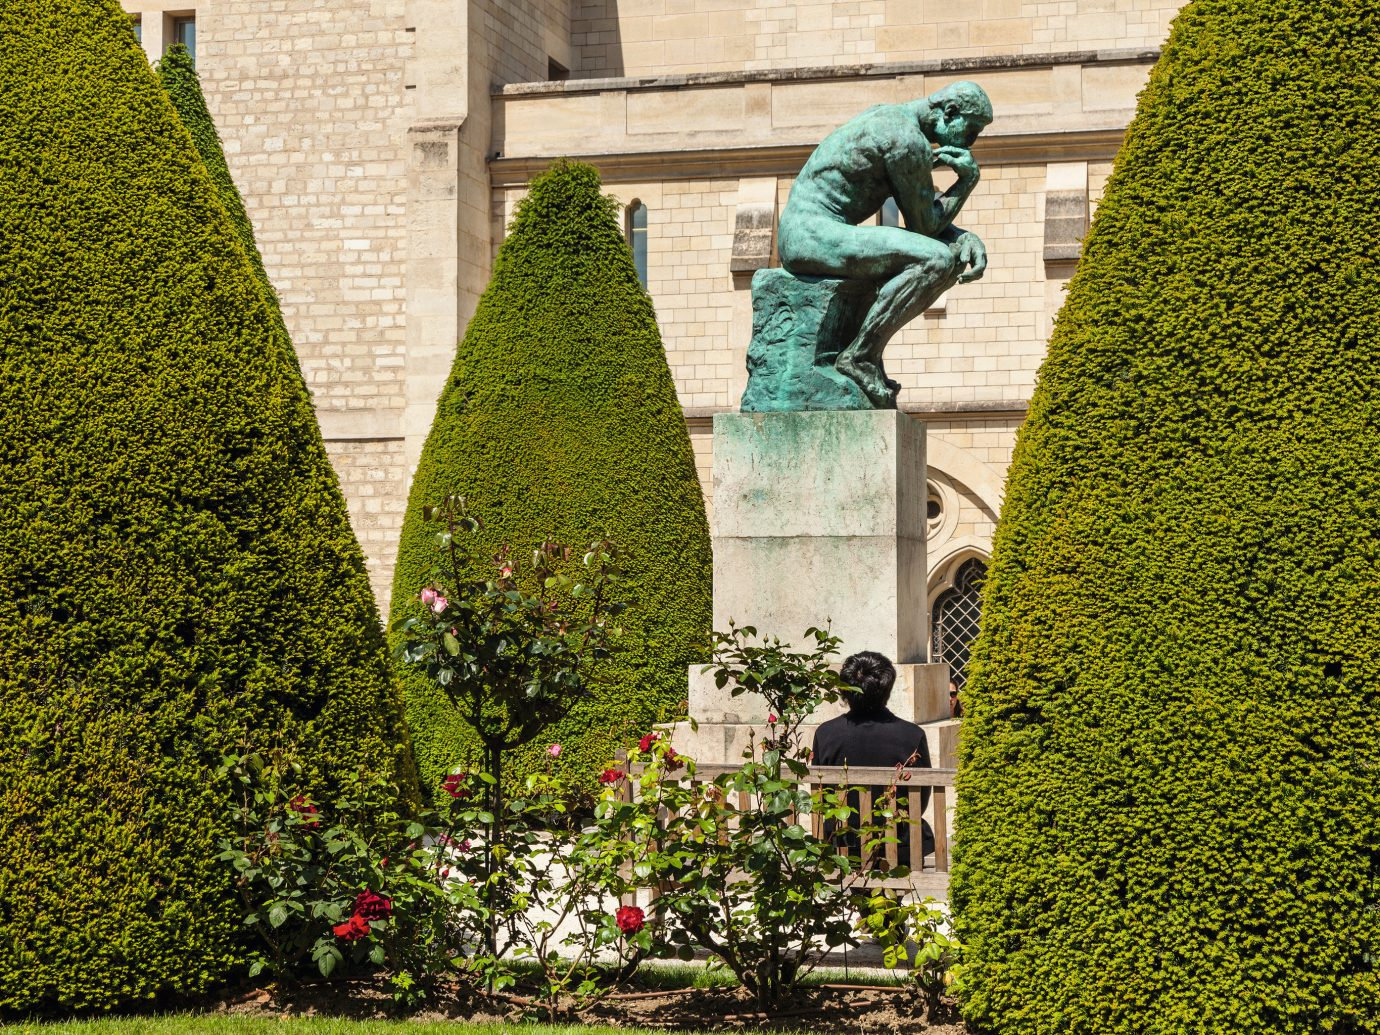 The Thinker statue at Musee Rodin